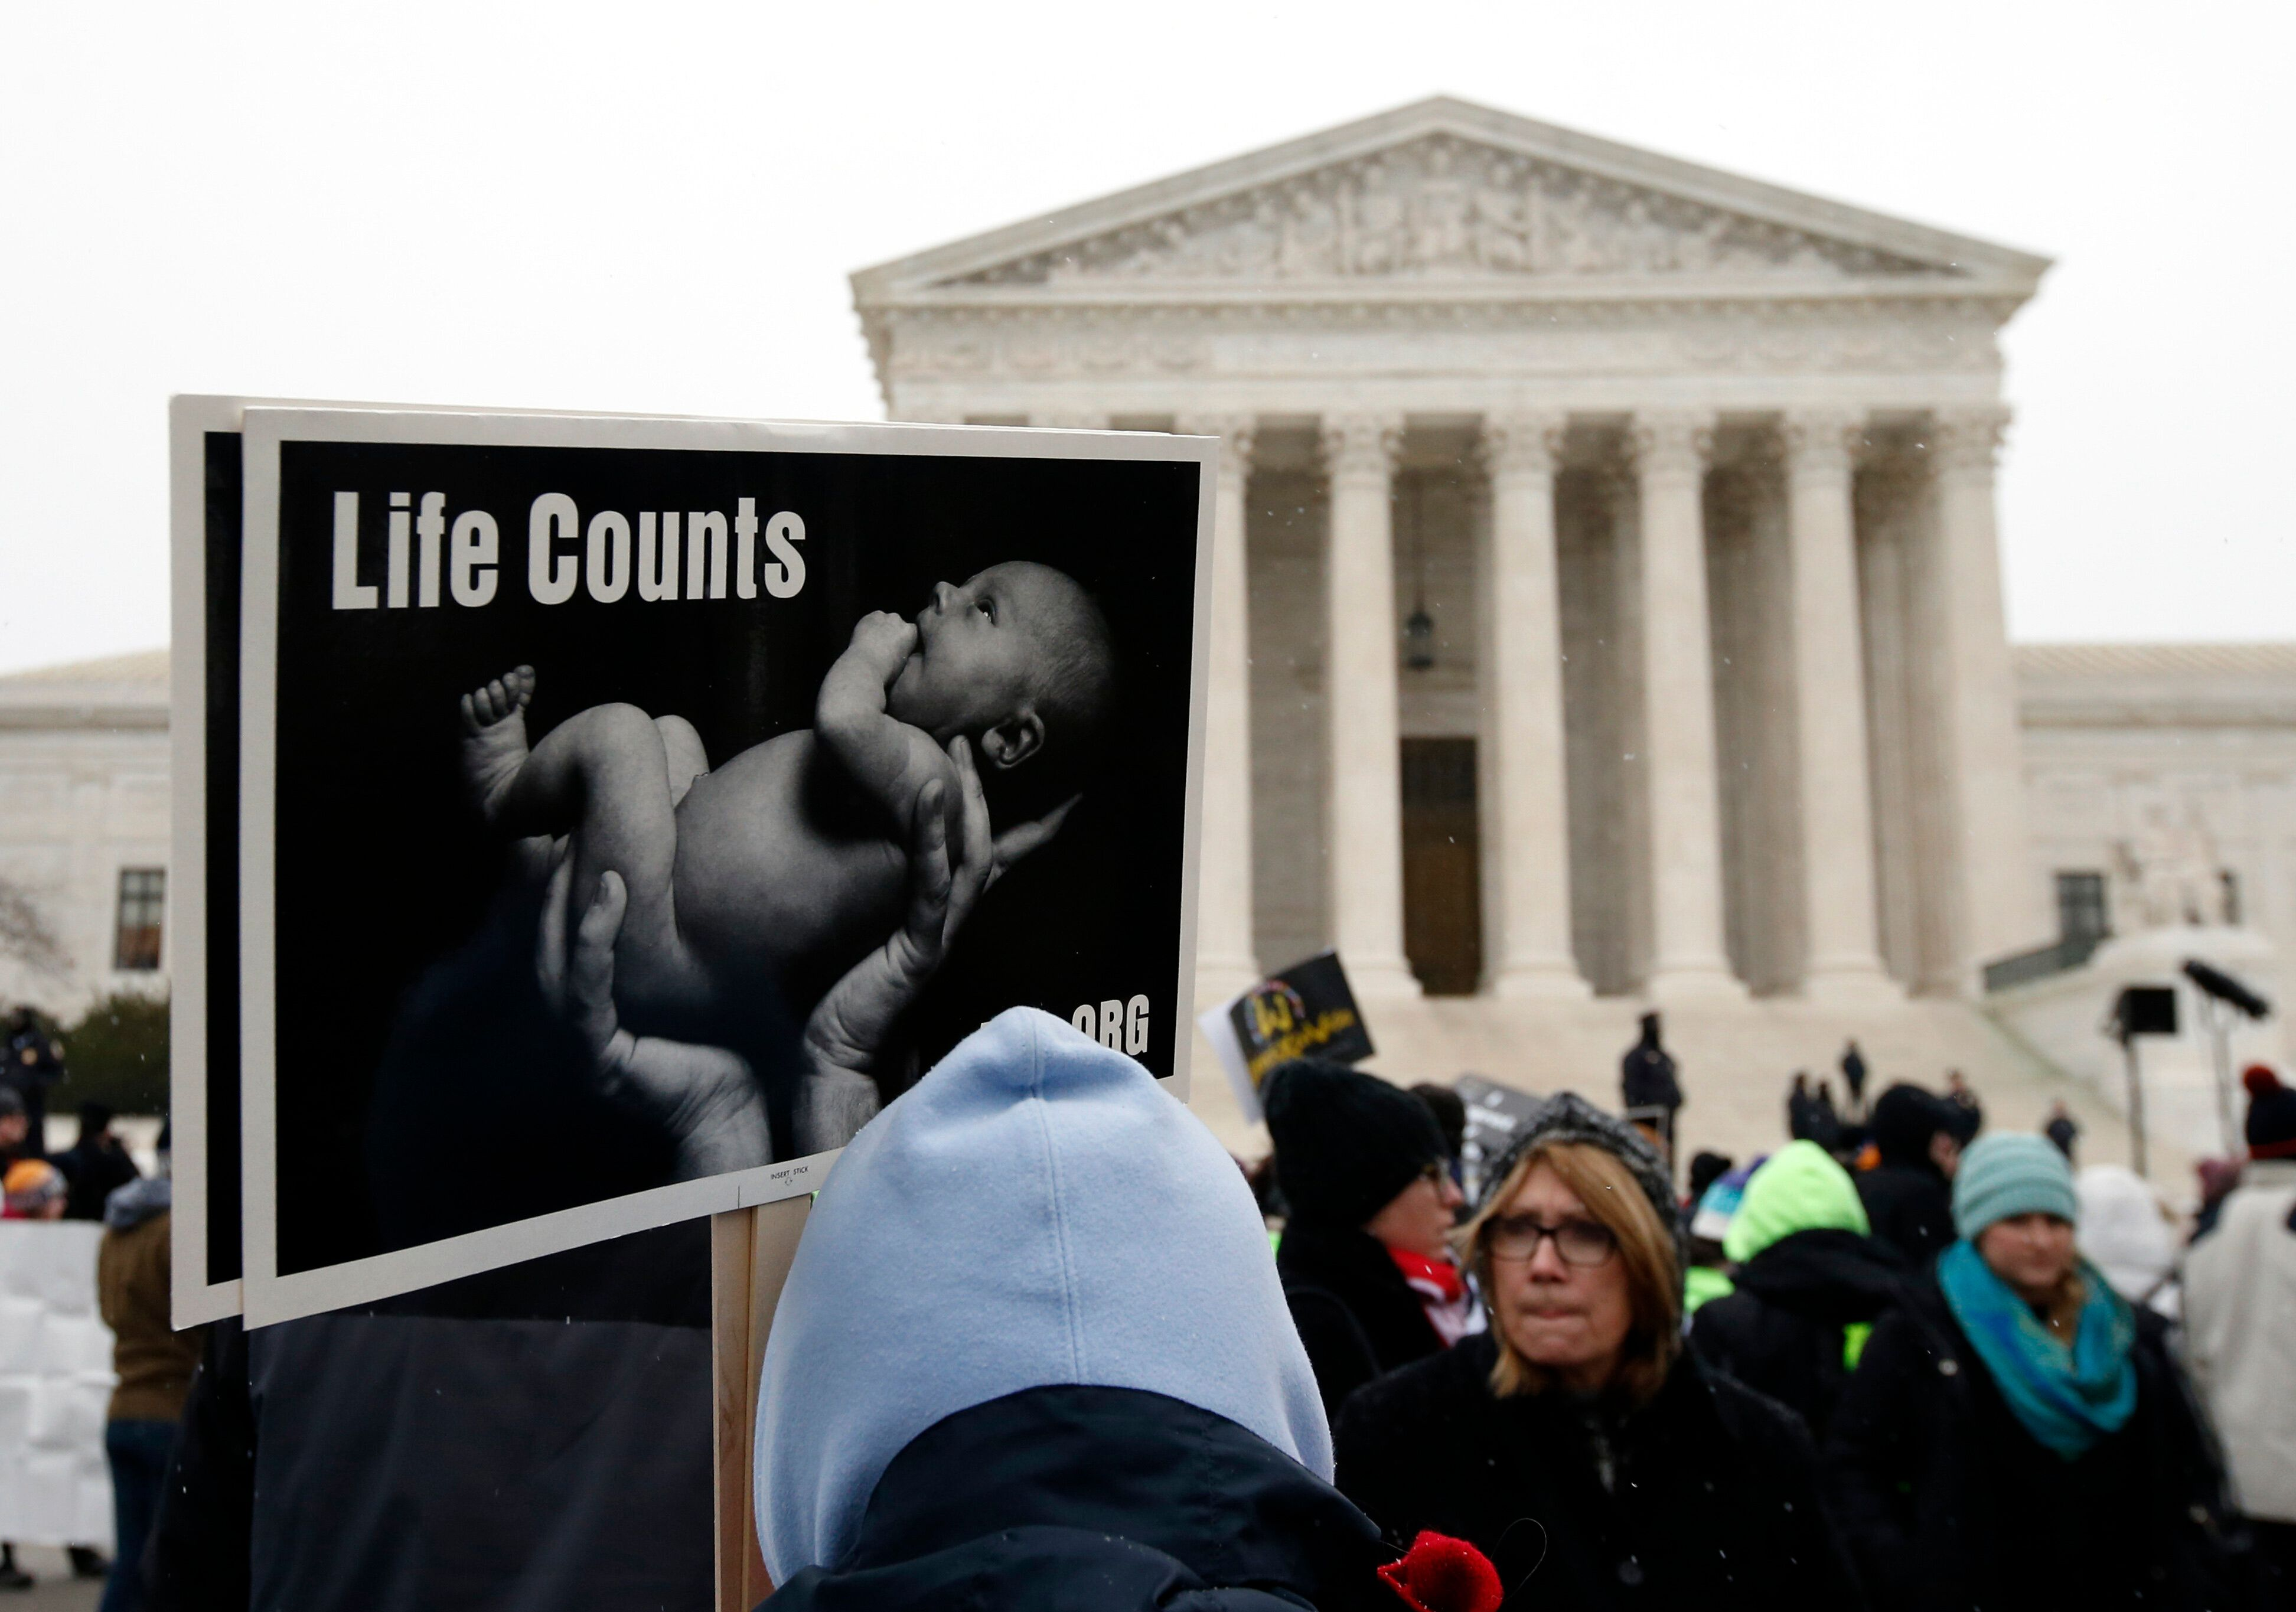 A marcher holds a sign during the March for Life 2016, in front of the U.S. Supreme Court,  Friday, Jan. 22, 2016 in Washington. January 22 is the anniversary of 1973 'Roe v. Wade' U.S. Supreme Court decision legalizing abortion. (AP Photo/Alex Brandon)